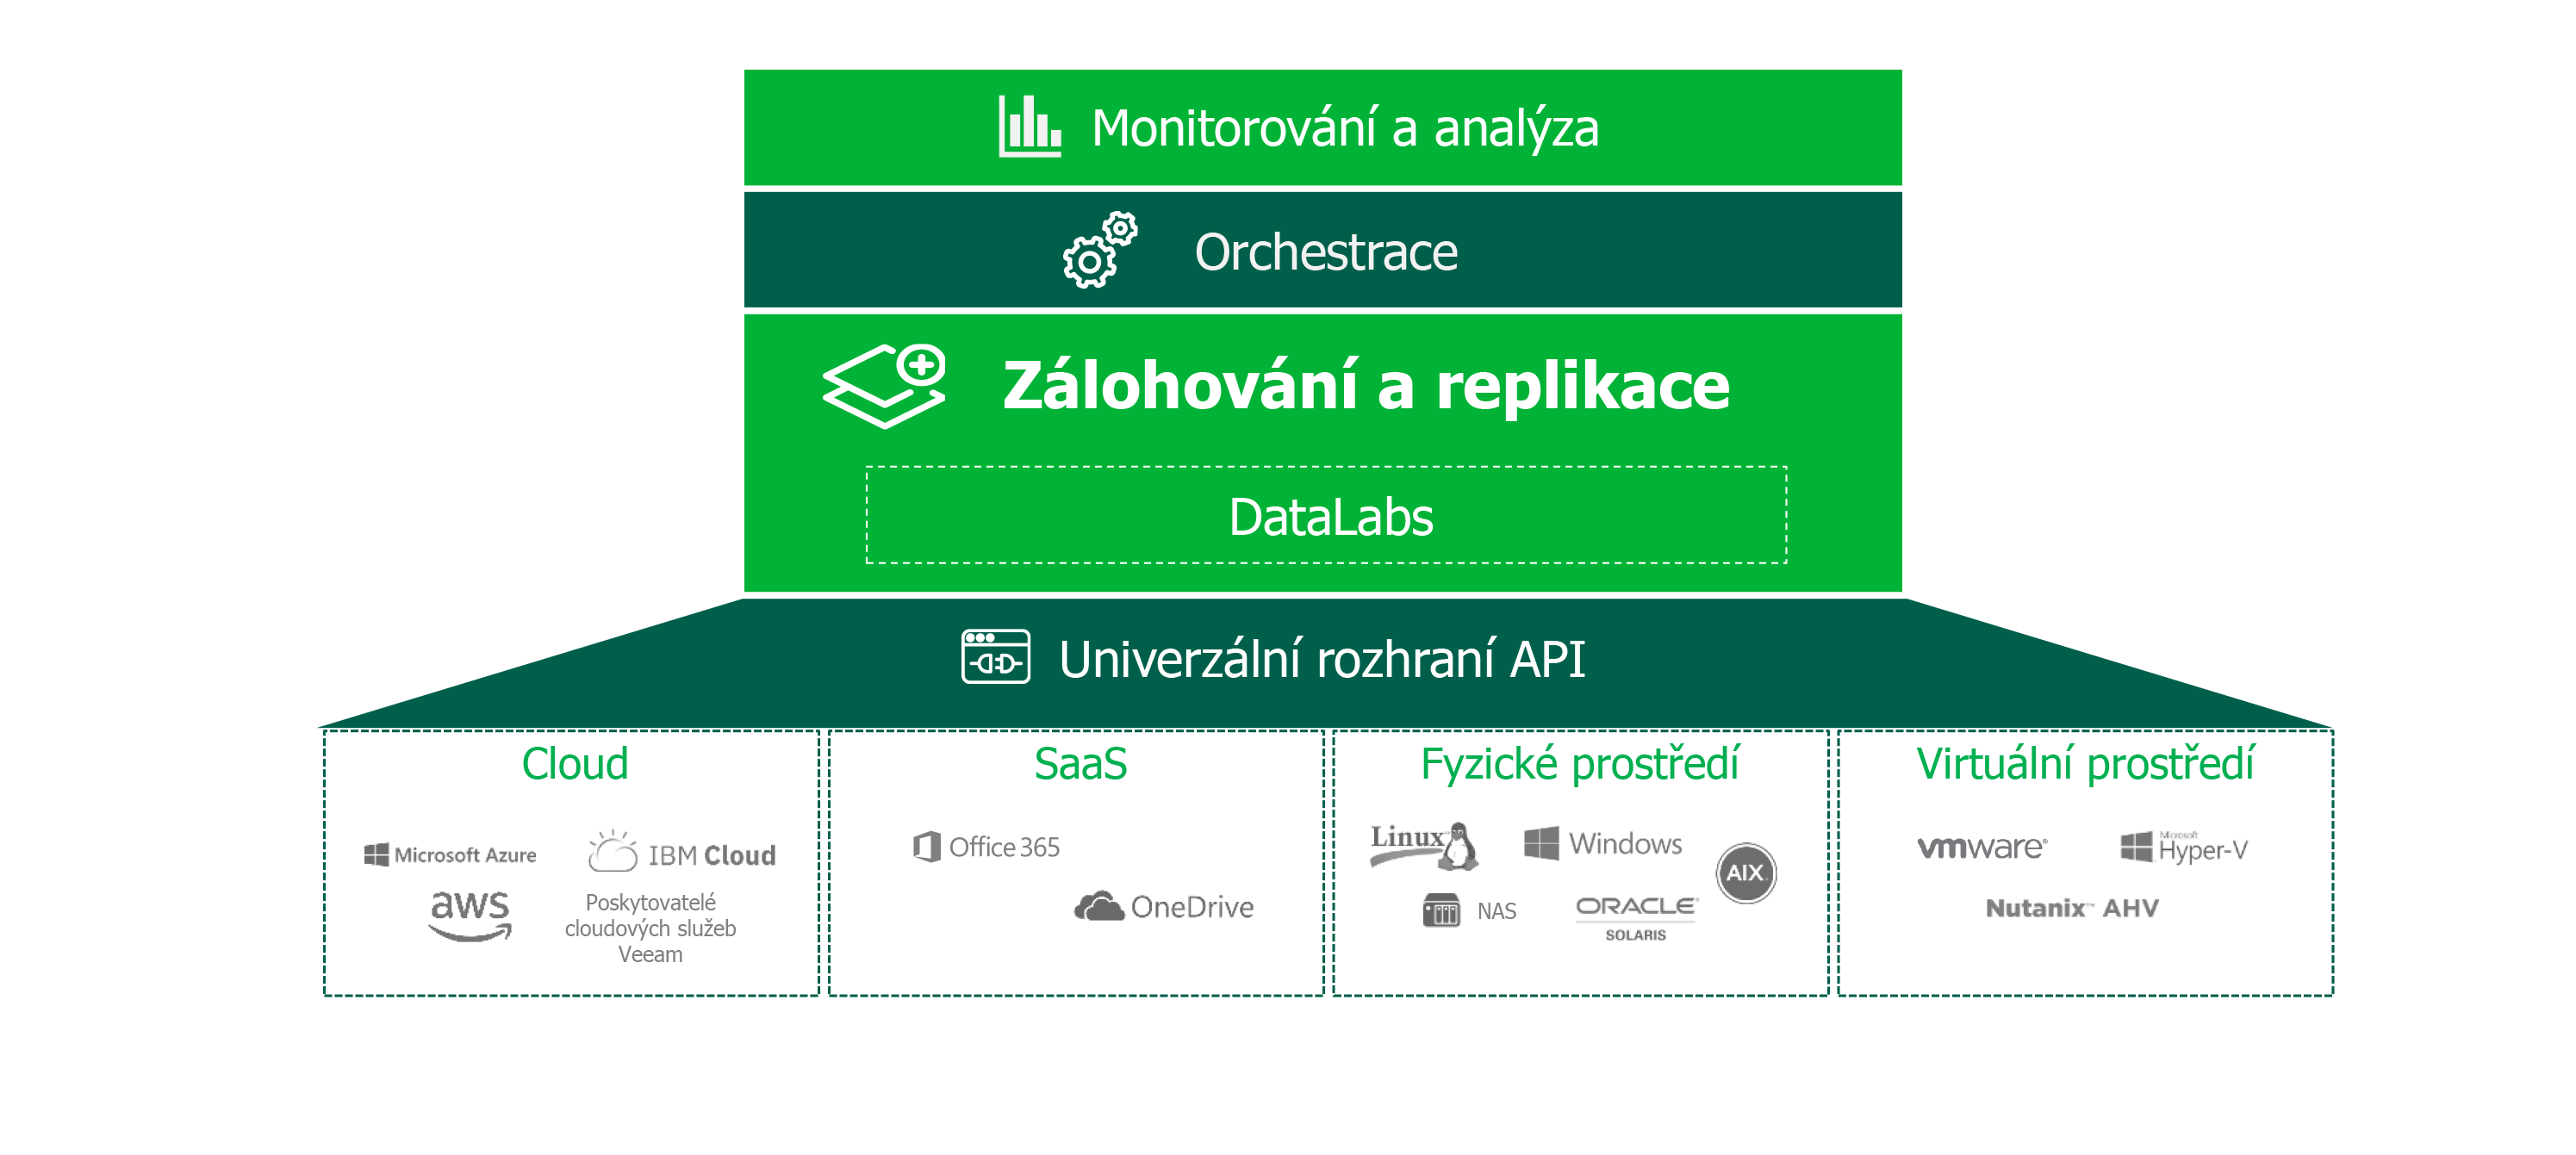 veeam-hyper-availability-platform_cz.png